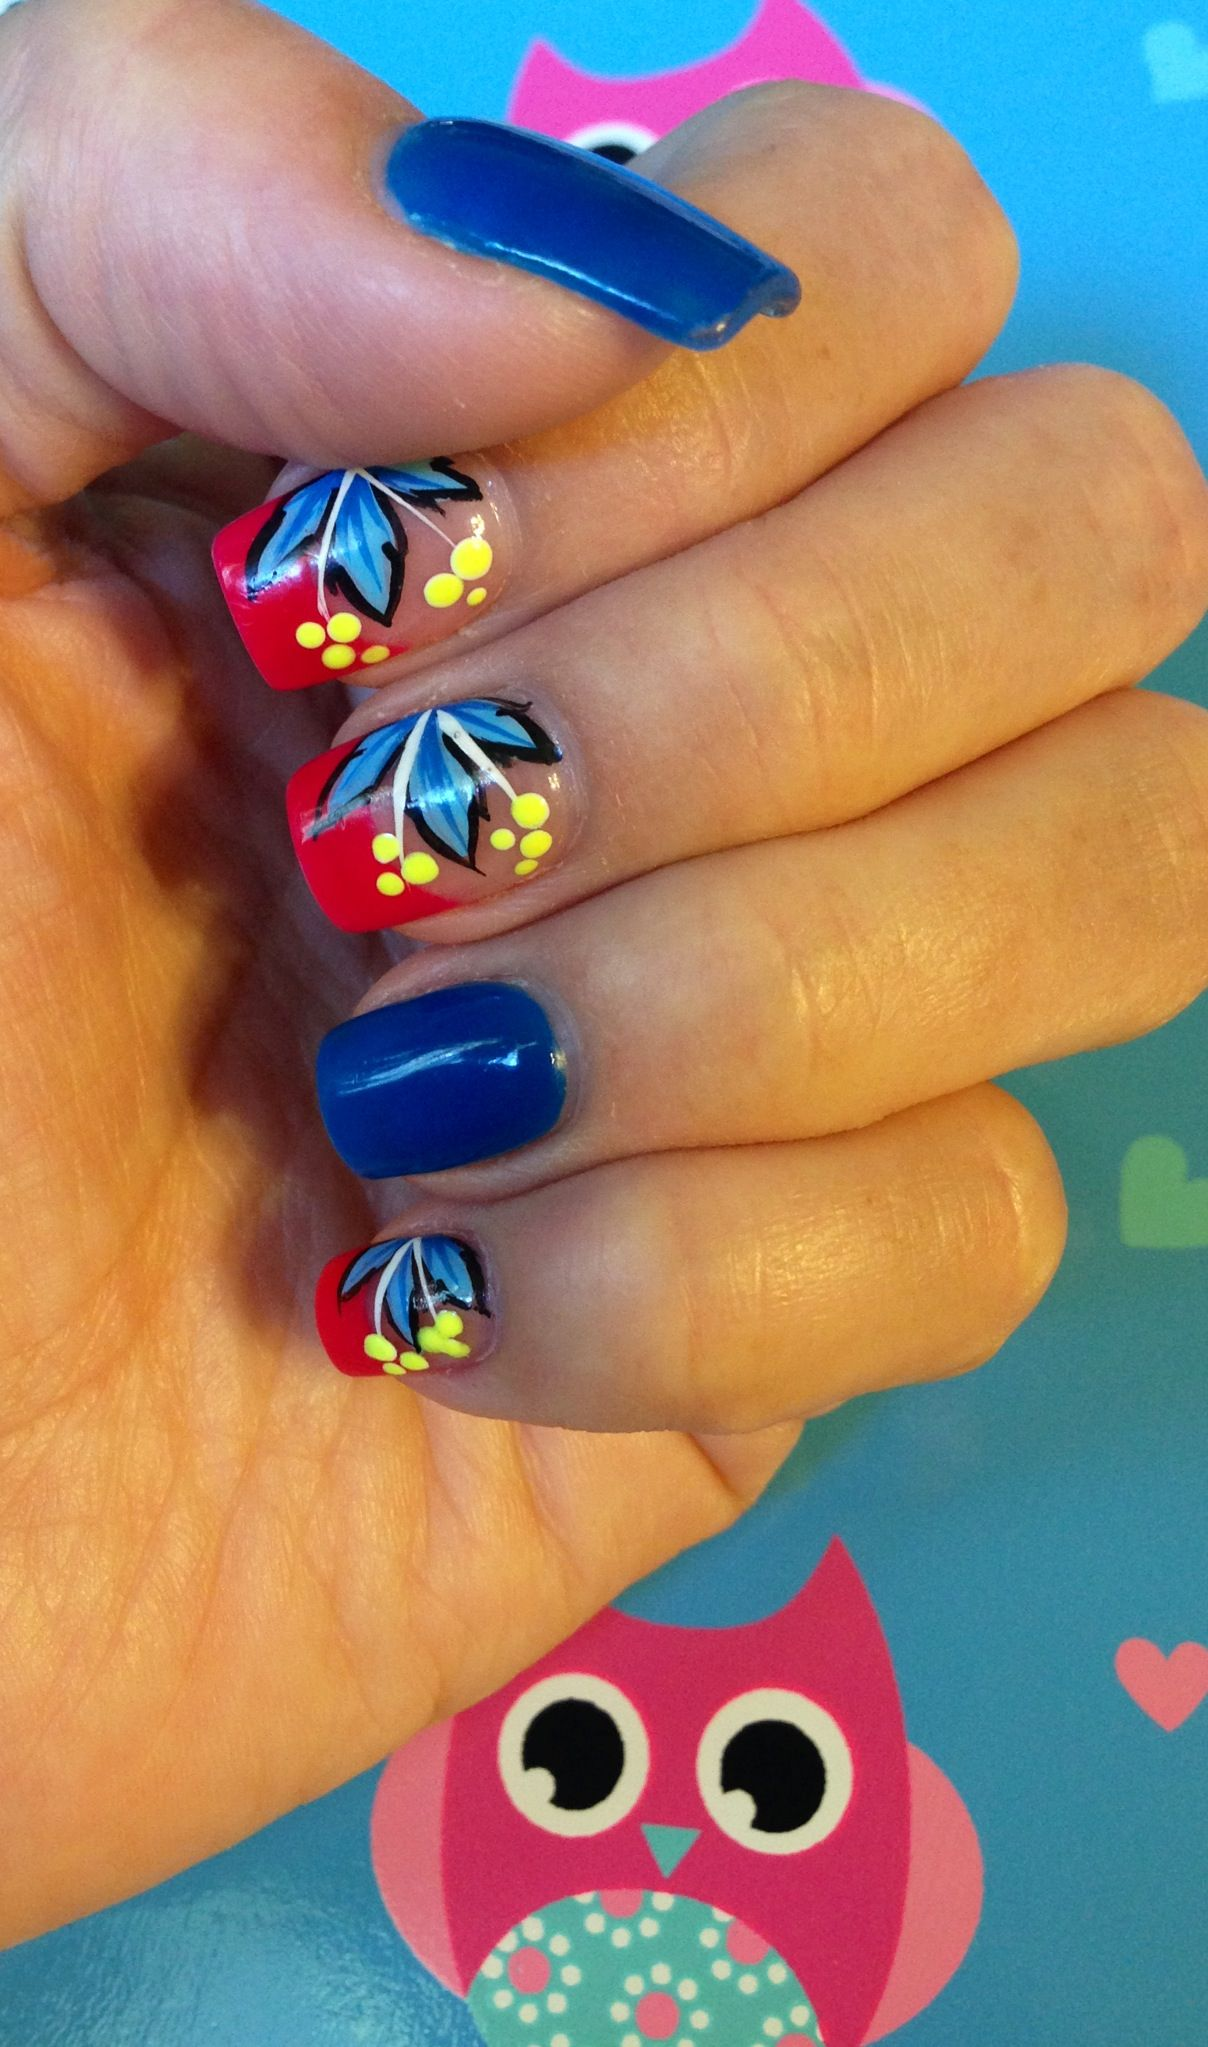 Right hand - nail art; summer fun. By Keri.